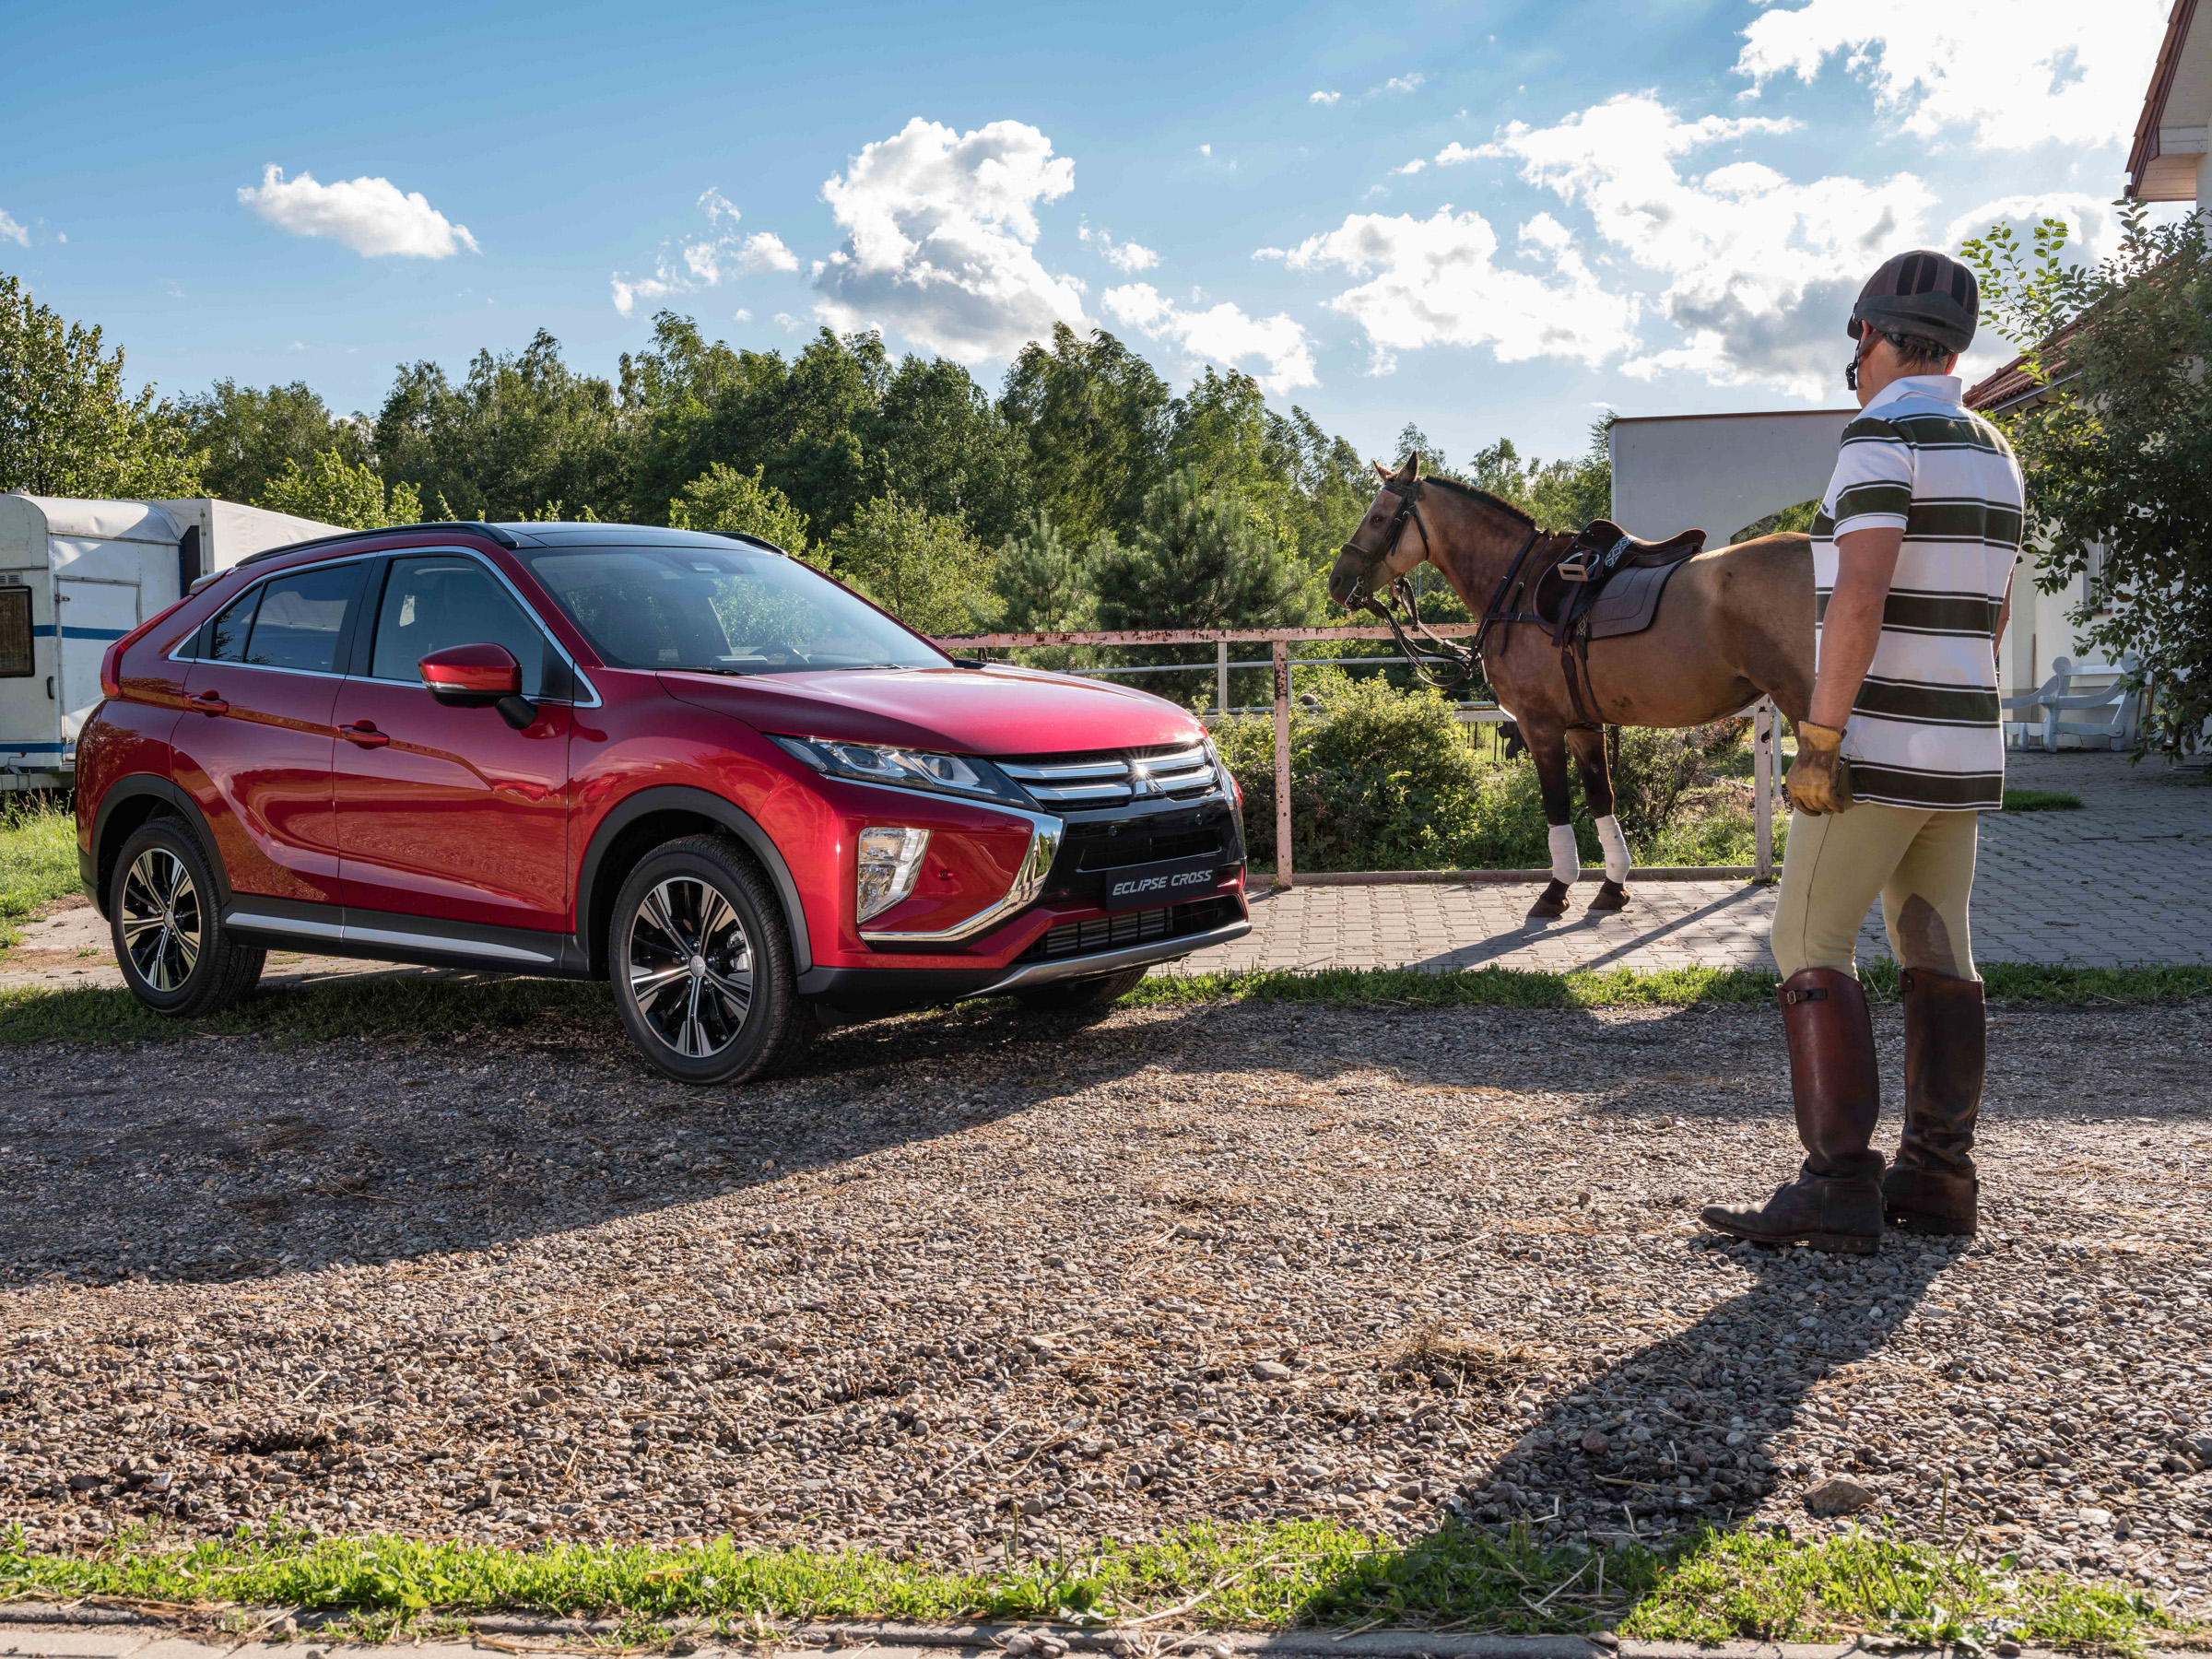 Mitsubishi_Eclipse_Cross_gra_w_polo  2jpg